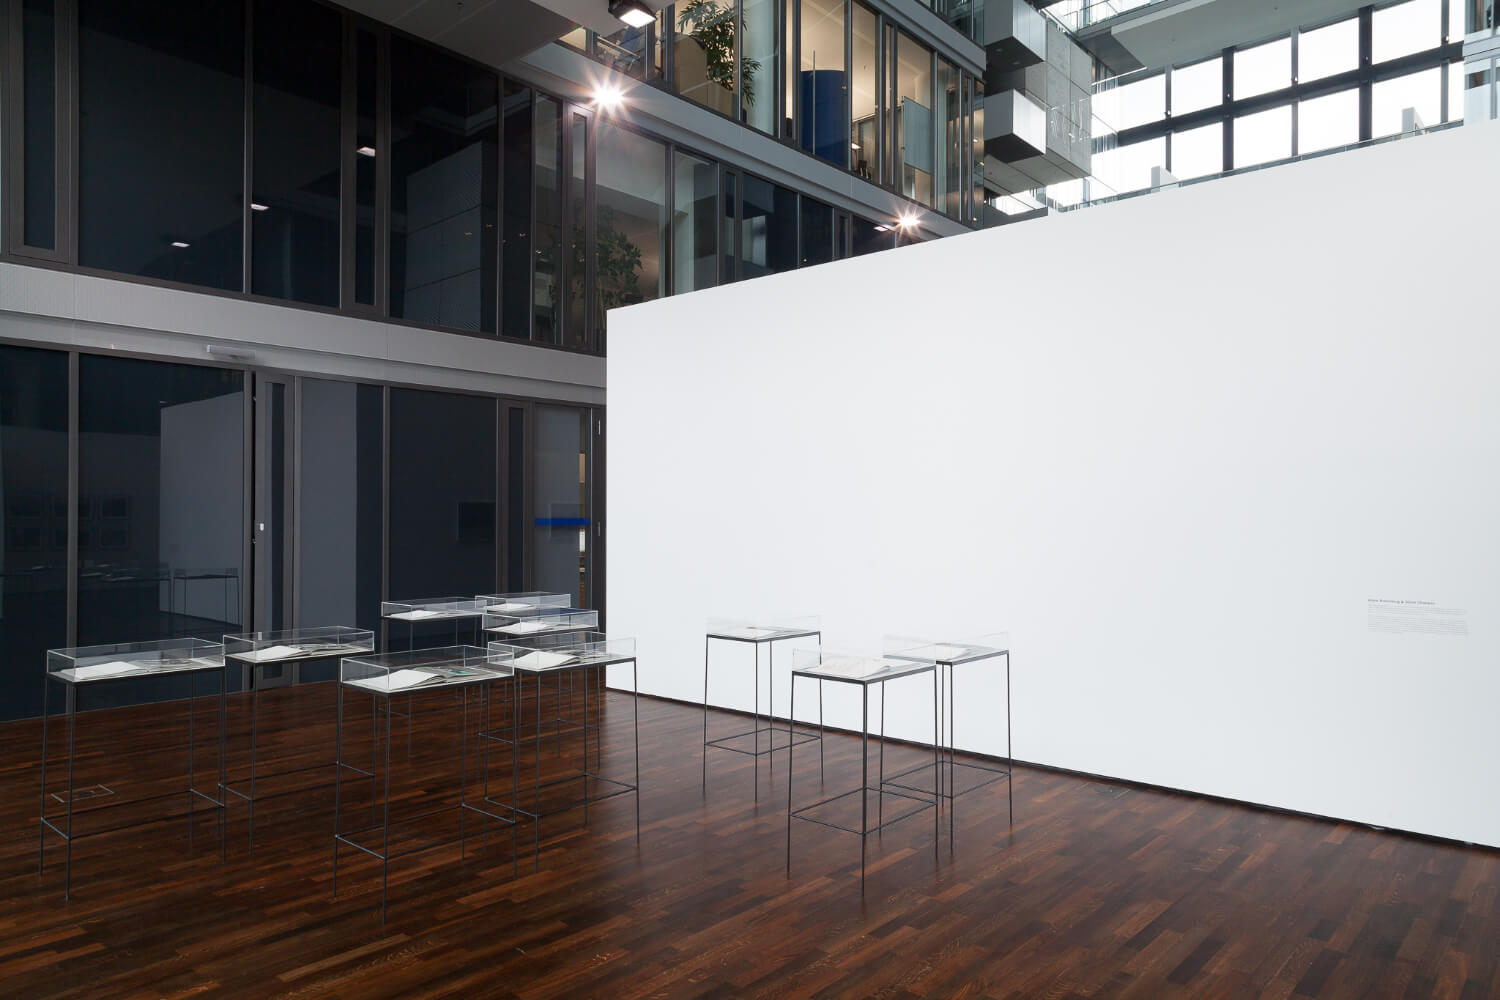 Installation view, Deutsche Börse Photography Prize, Deutsche Börse AG Headquarters, Germany, 2013.jpg